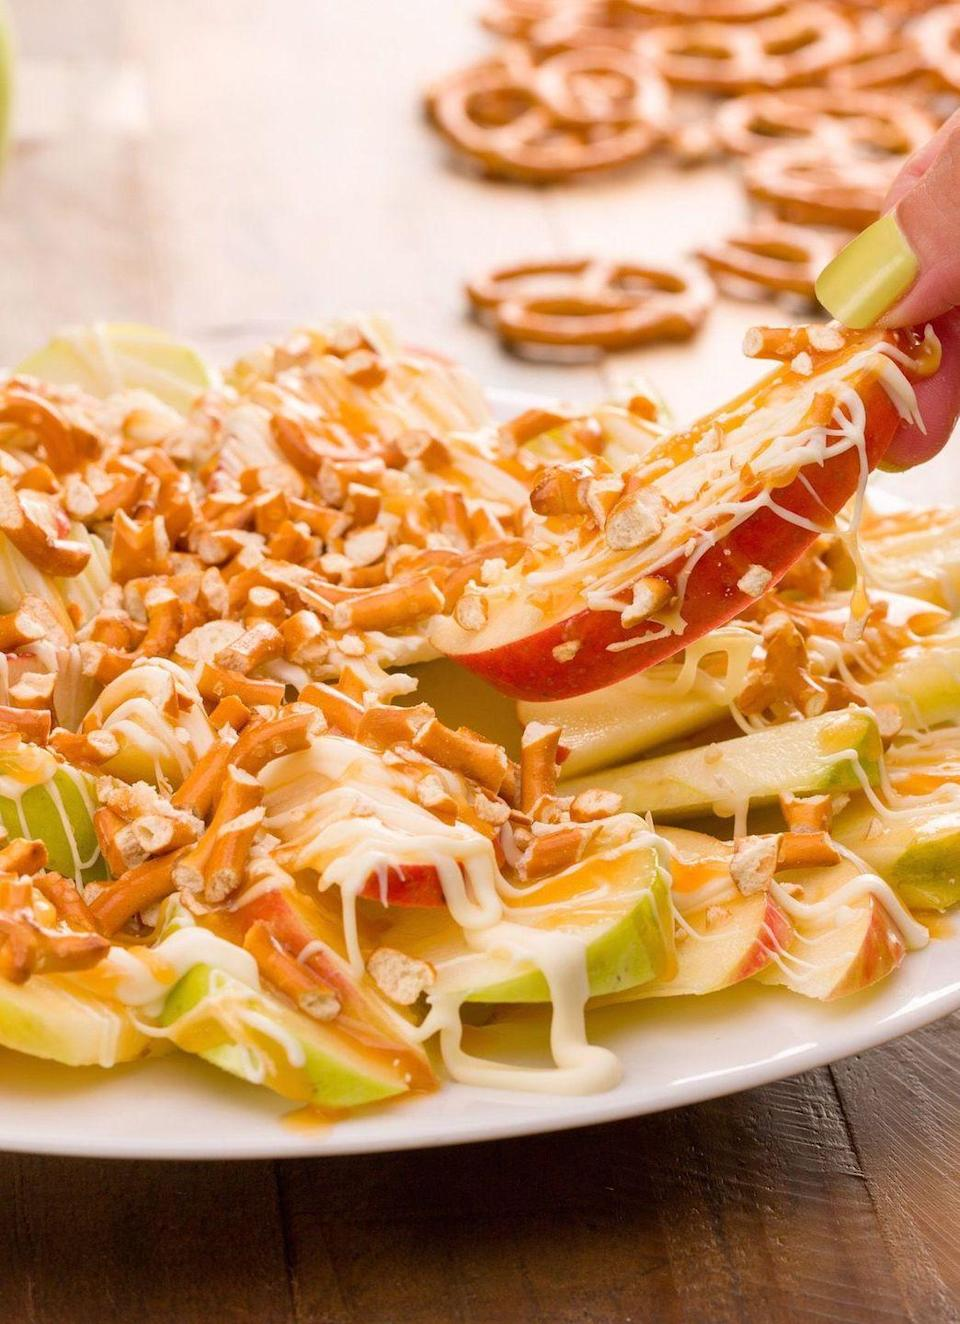 "<p>Apple nachos > regular nachos.</p><p>Get the recipe from <a href=""https://www.delish.com/cooking/recipe-ideas/recipes/a43818/apple-nachos-recipe/"" rel=""nofollow noopener"" target=""_blank"" data-ylk=""slk:Delish"" class=""link rapid-noclick-resp"">Delish</a>. </p>"